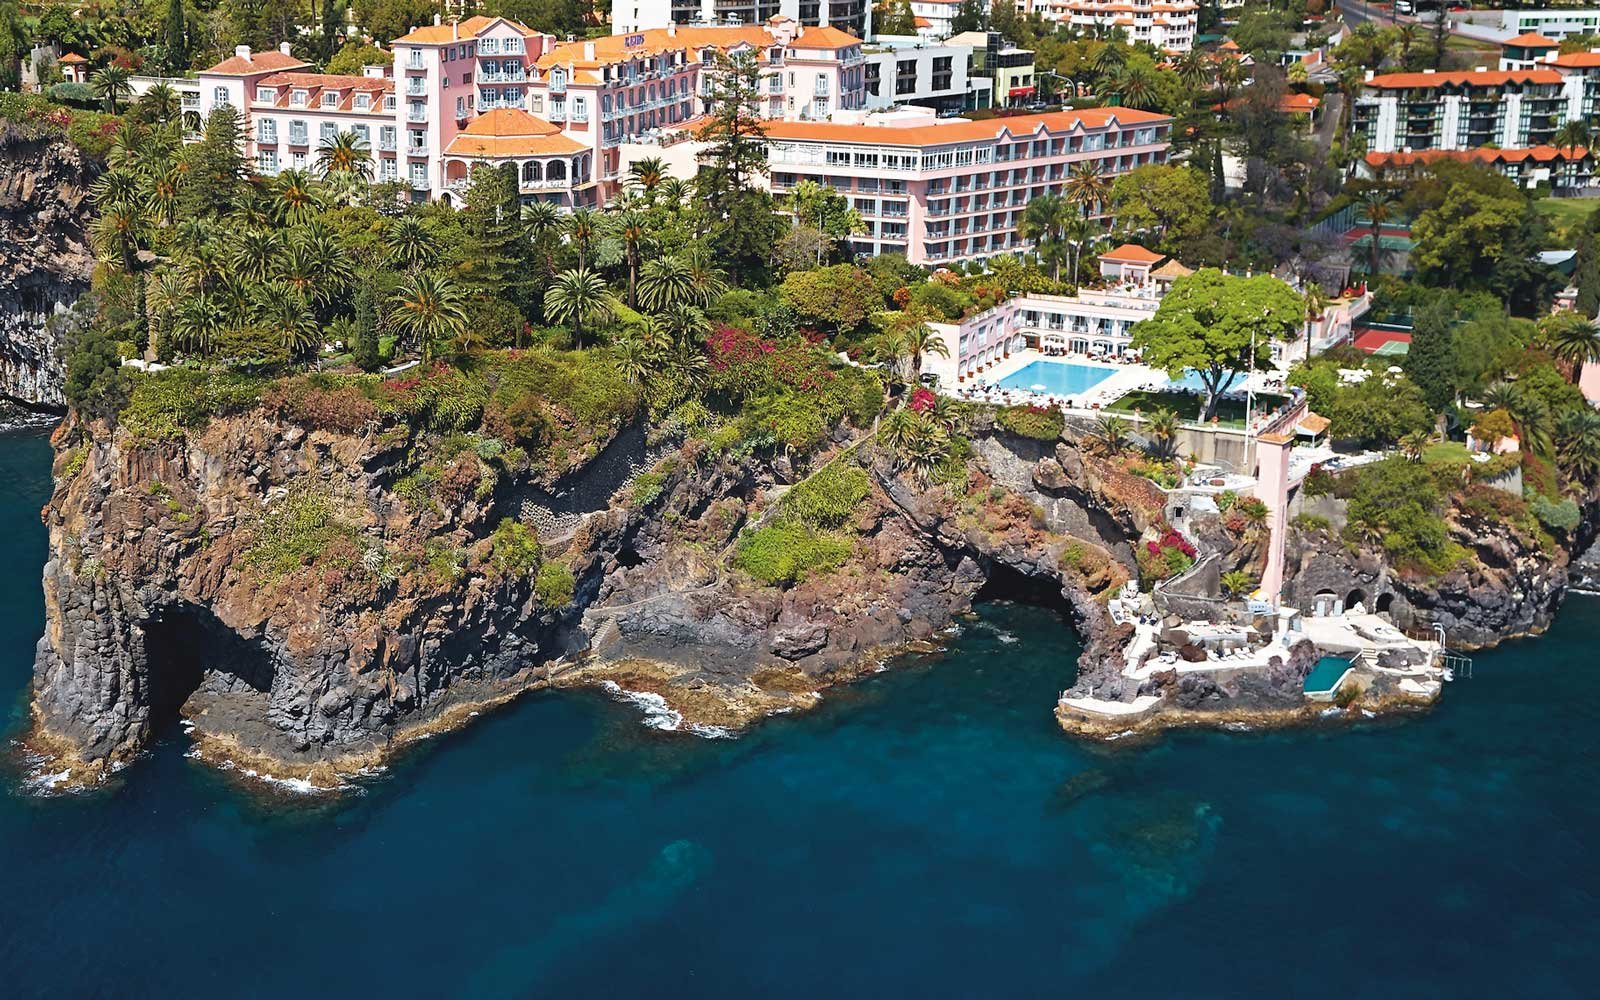 A stay at this beautiful Clifftop resort in Portugal comes with major Travel + Leisure benefits